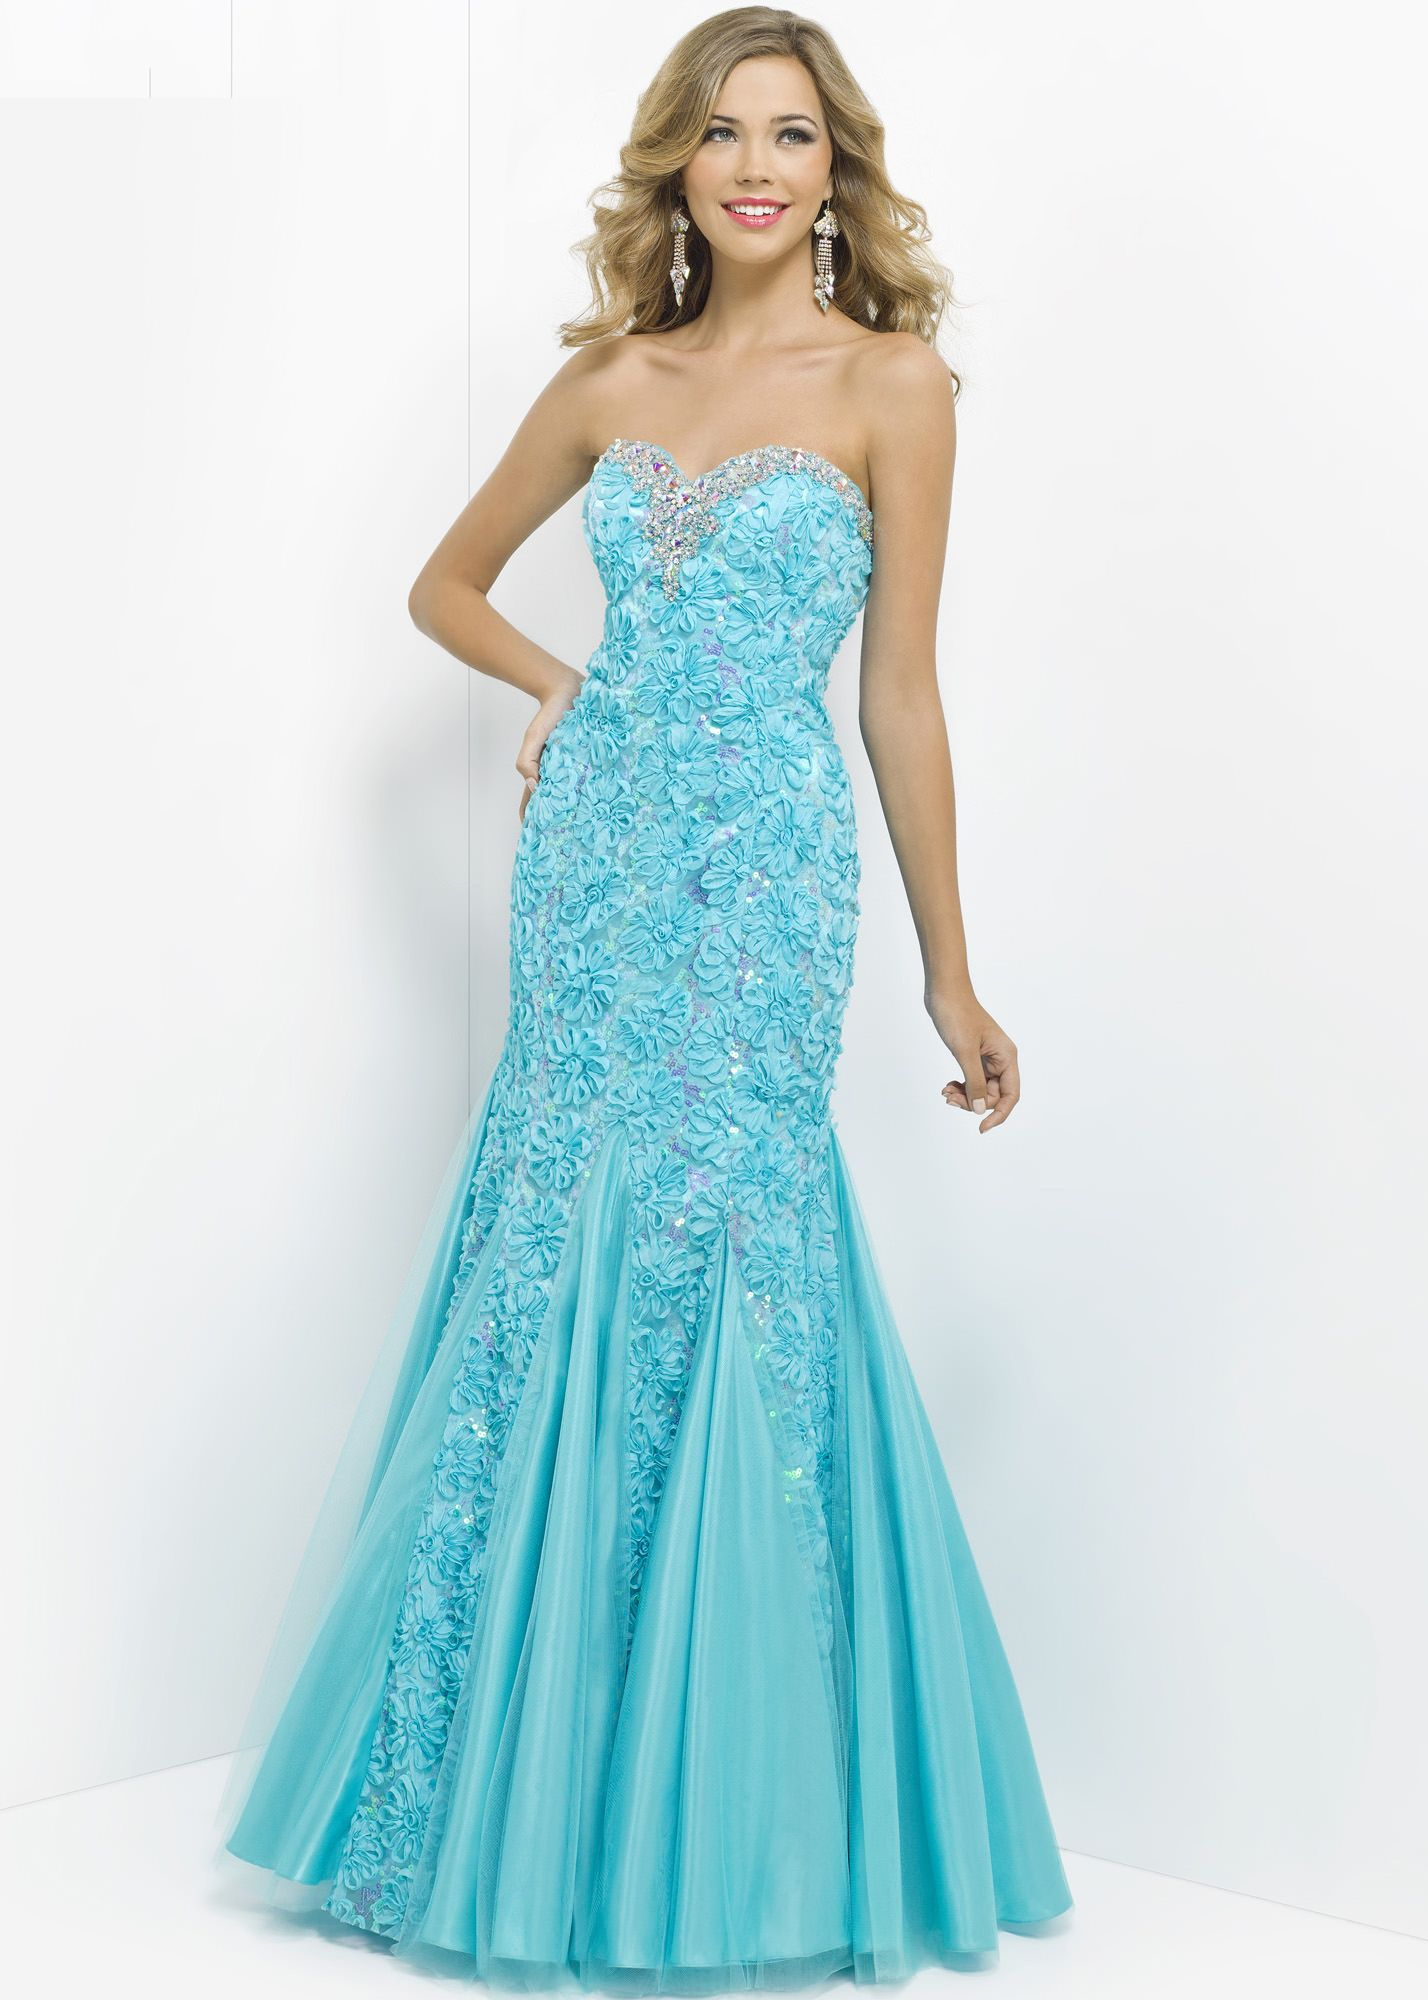 Blush prom turquoise sweetheart dress rissyroos prom